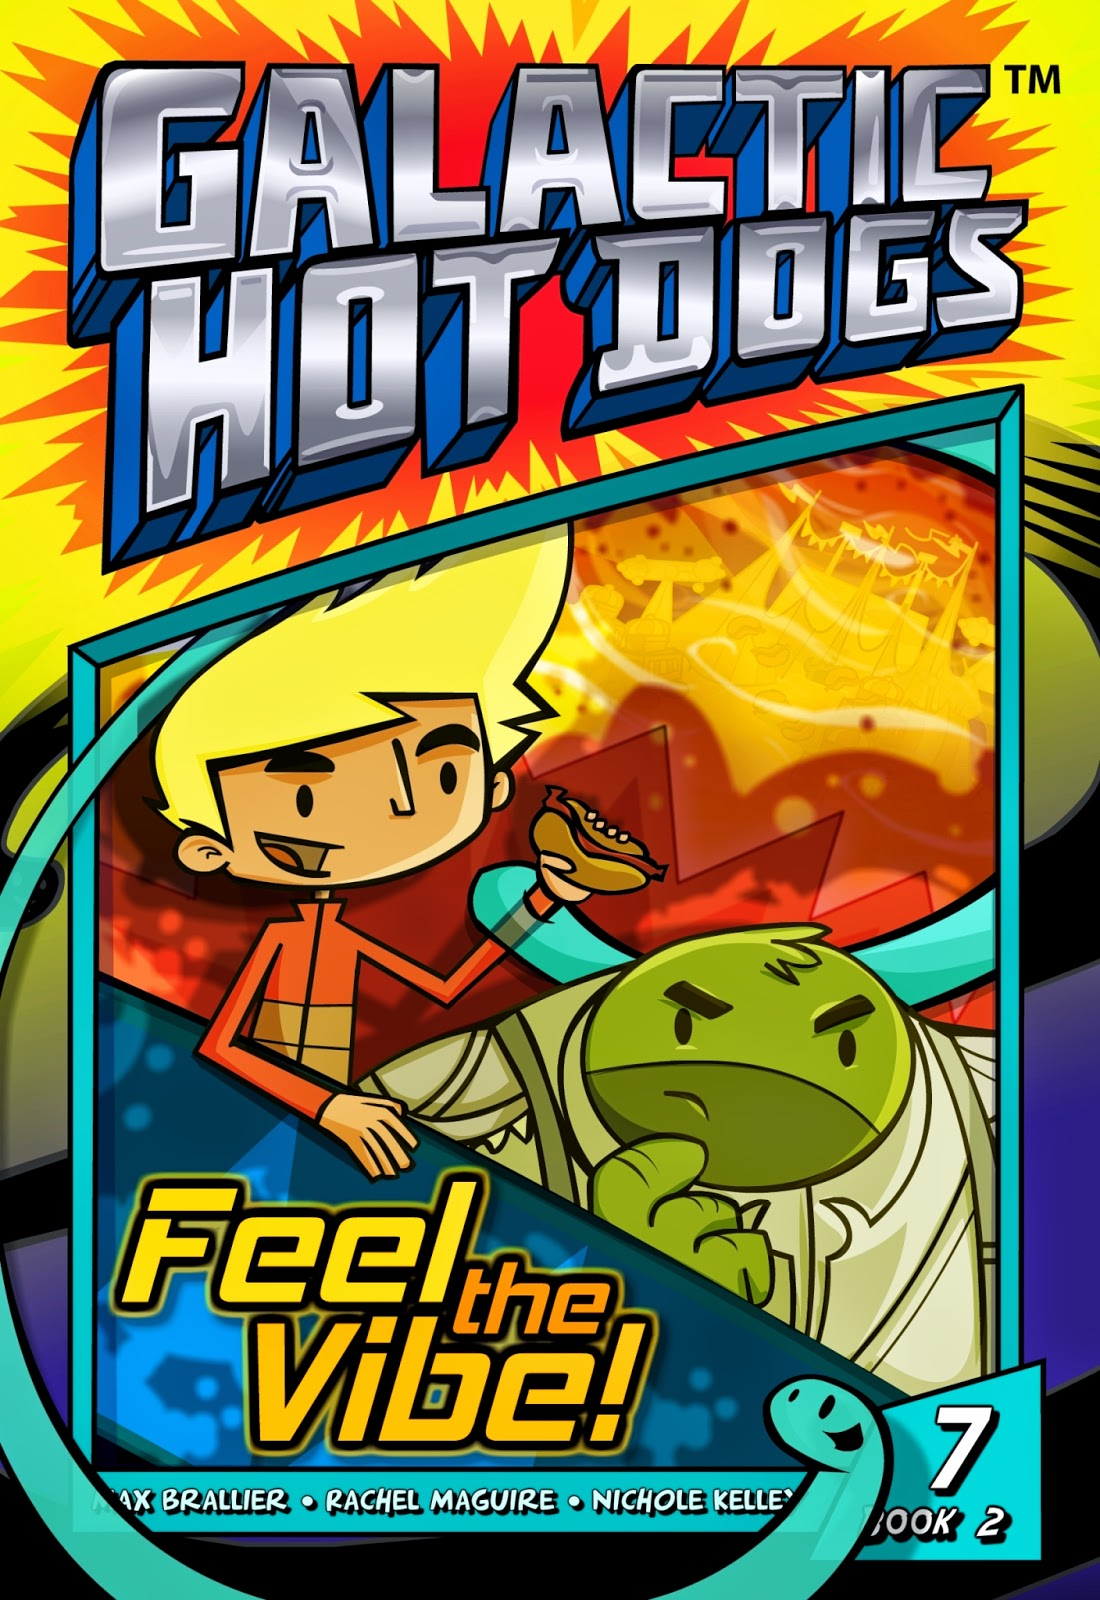 Galactic Hot Dogs: Book Two - Chapter 7 - Feel the Vibe!